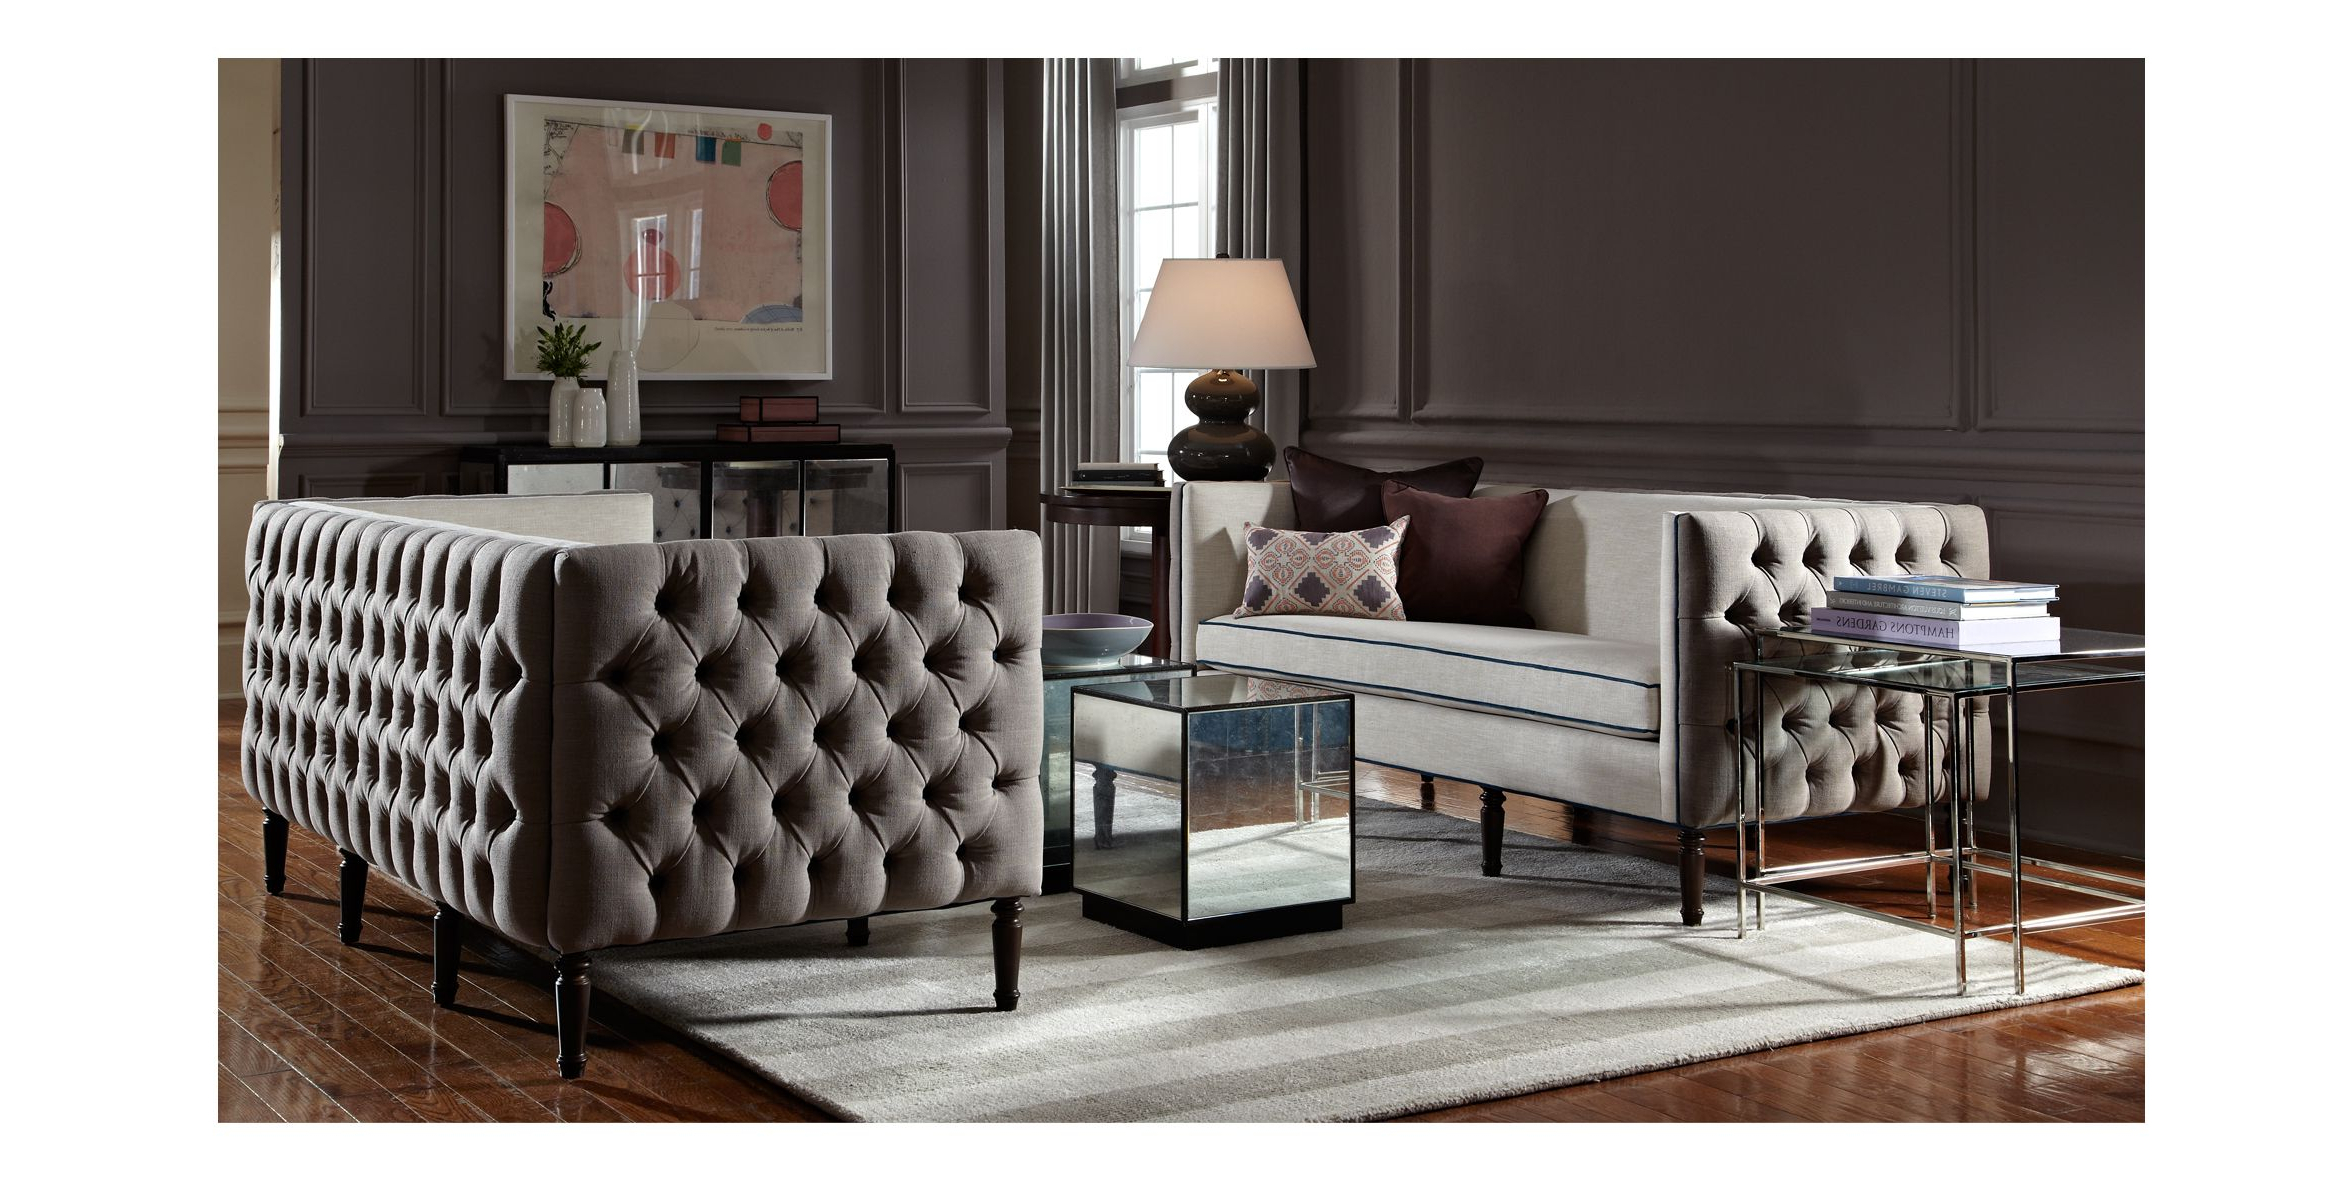 Modern Tufted Sofa – Google Search | Turn Of The Century Moderne Inside Parsons Grey Solid Surface Top & Brass Base 48x16 Console Tables (View 13 of 19)